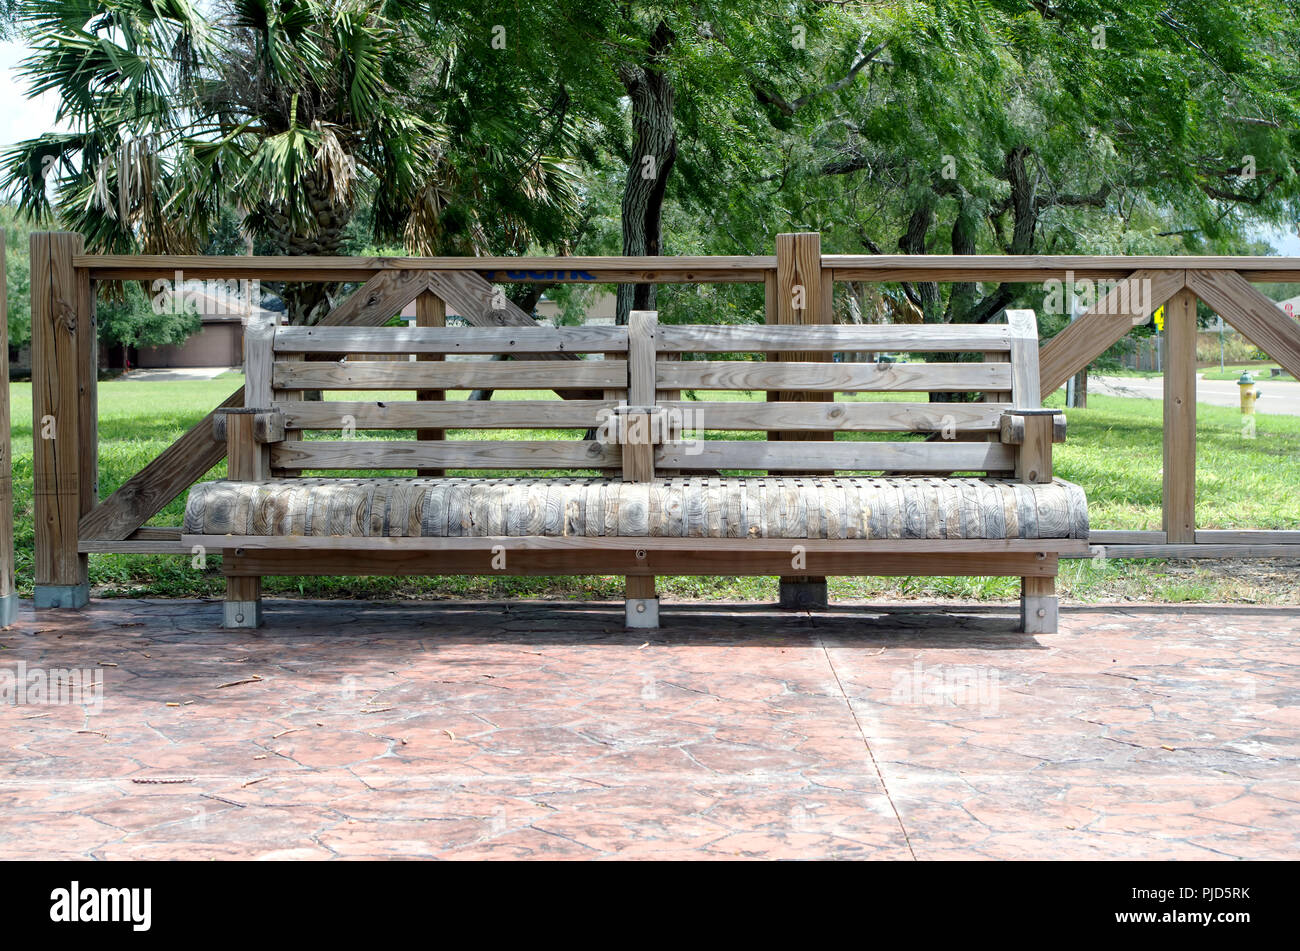 A sturdy wooden bench of unusual style is permanently affixed to stamped concrete (view 1.)  Schanen hike and bike trail Corpus Christi, Texas USA. - Stock Image